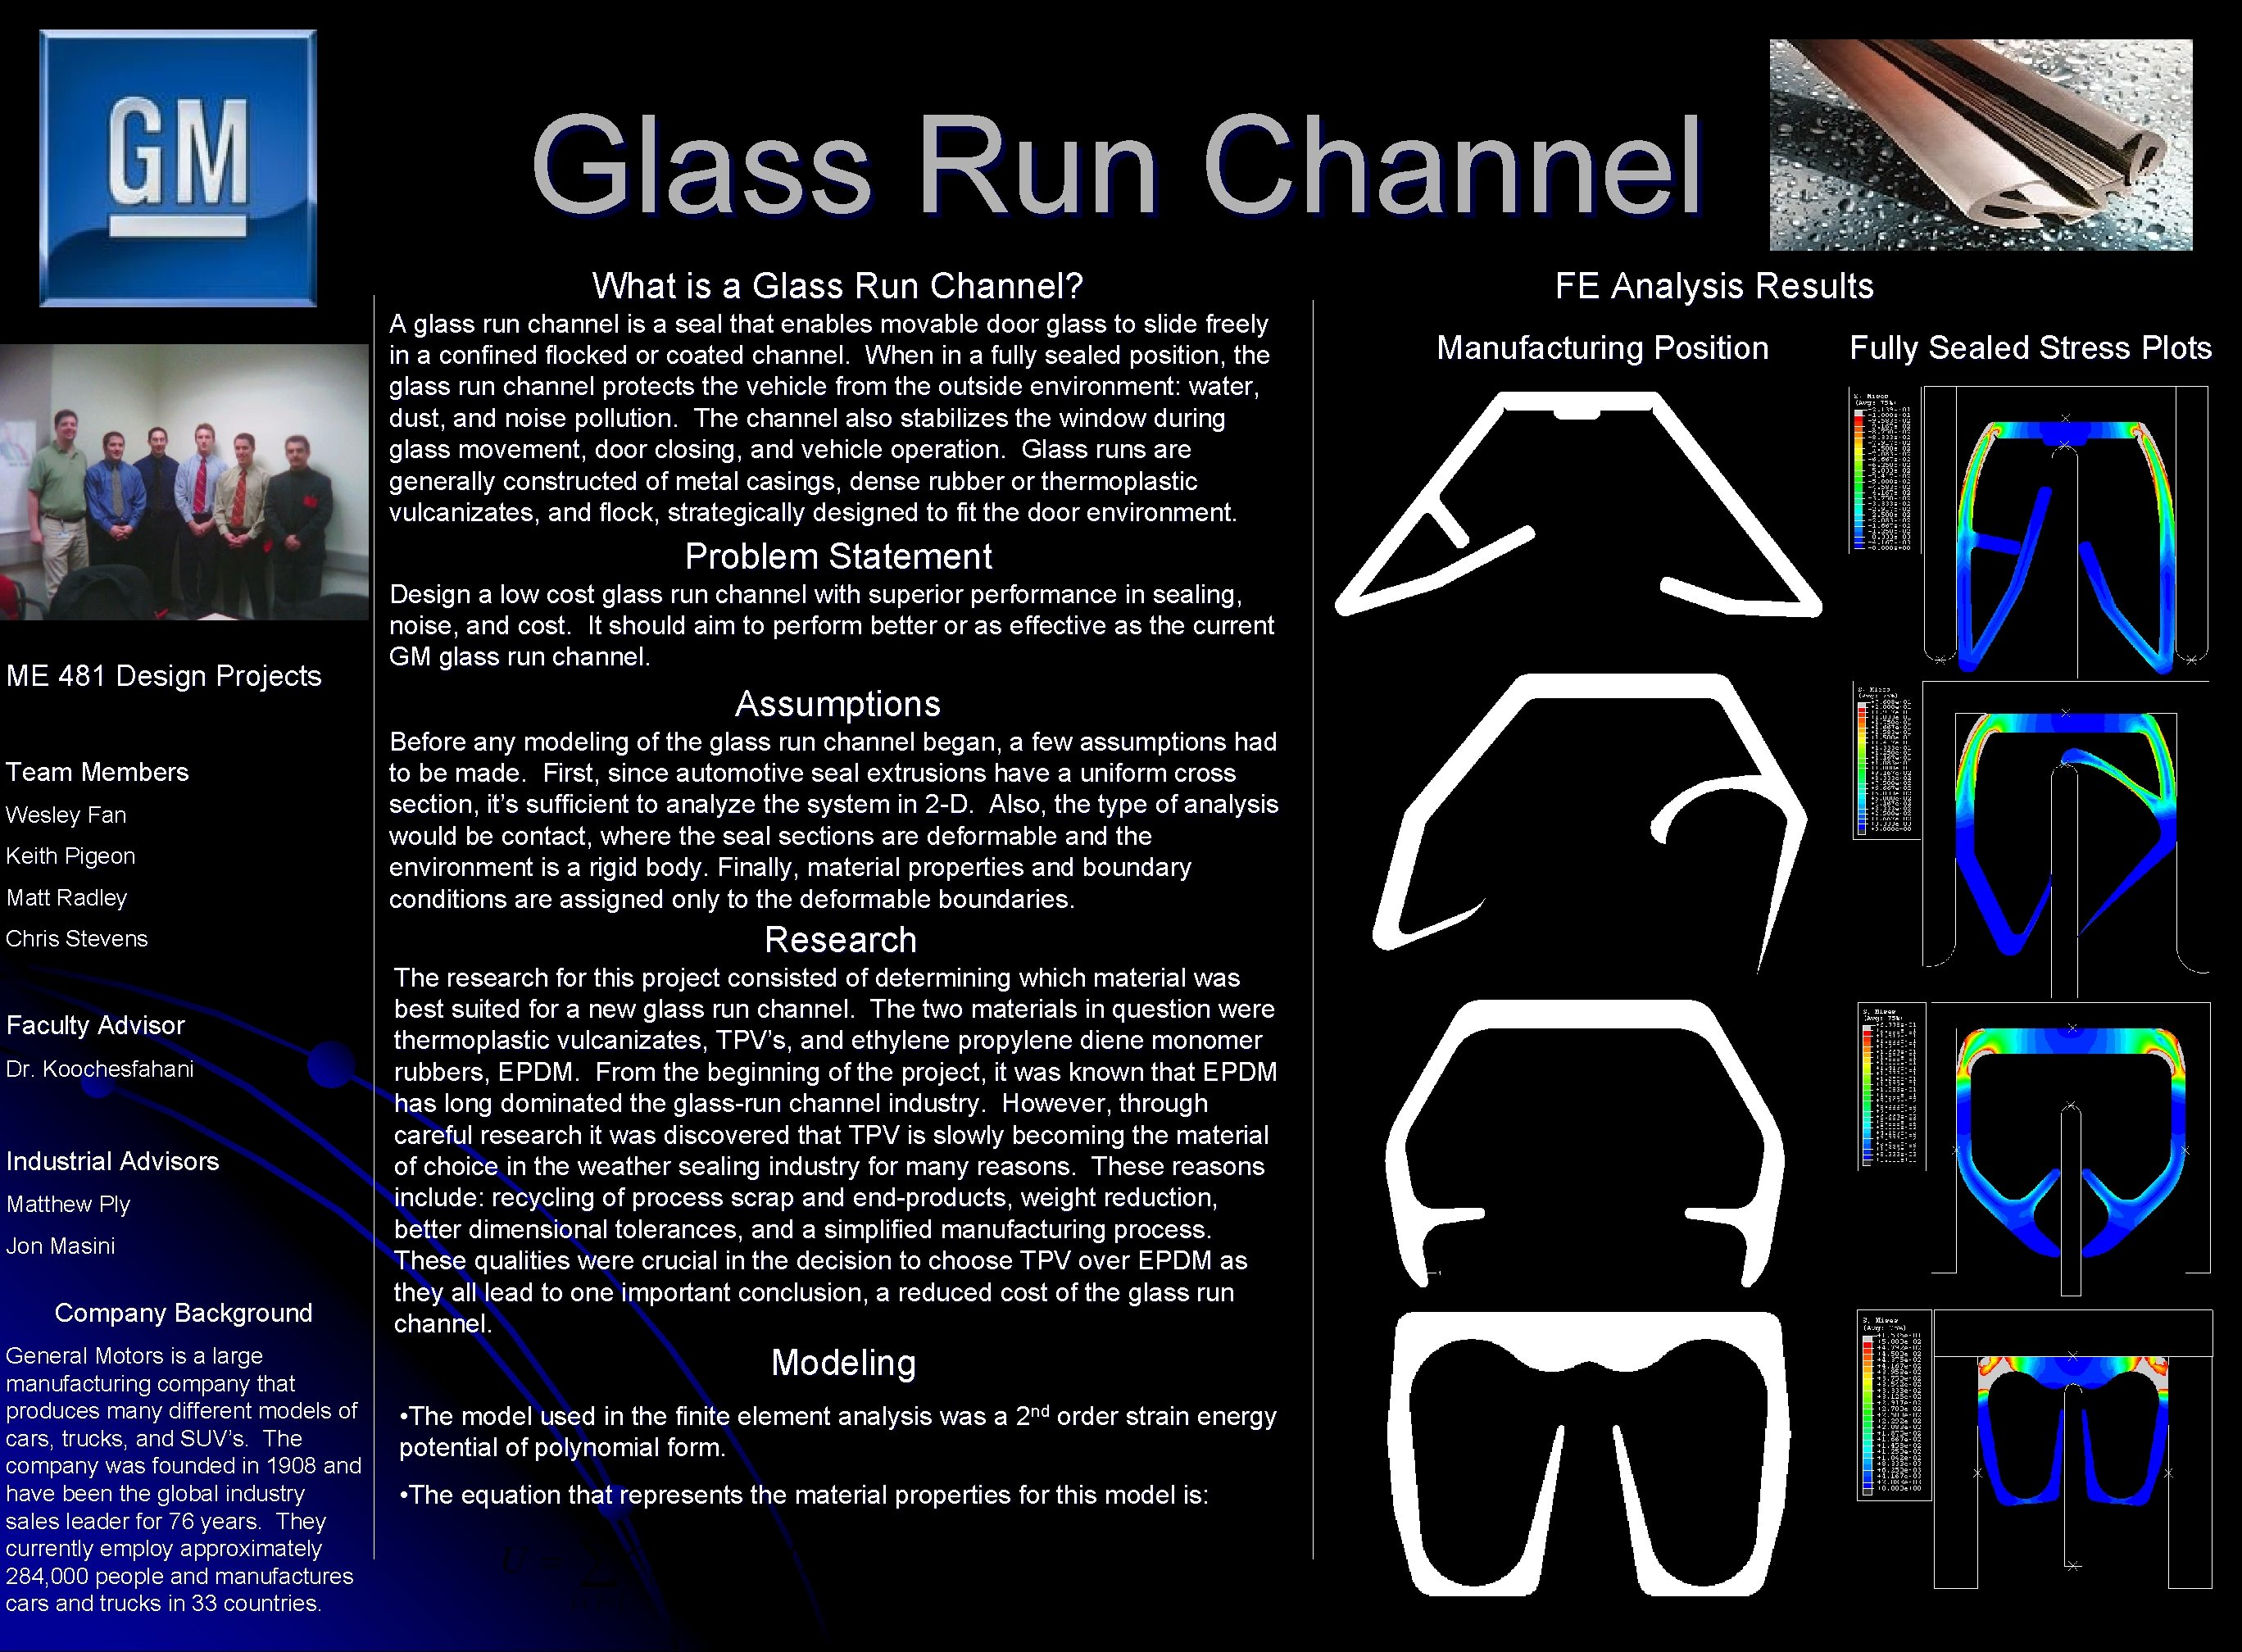 Glass Run Channel What is a Glass Run Channel? A glass run channel is